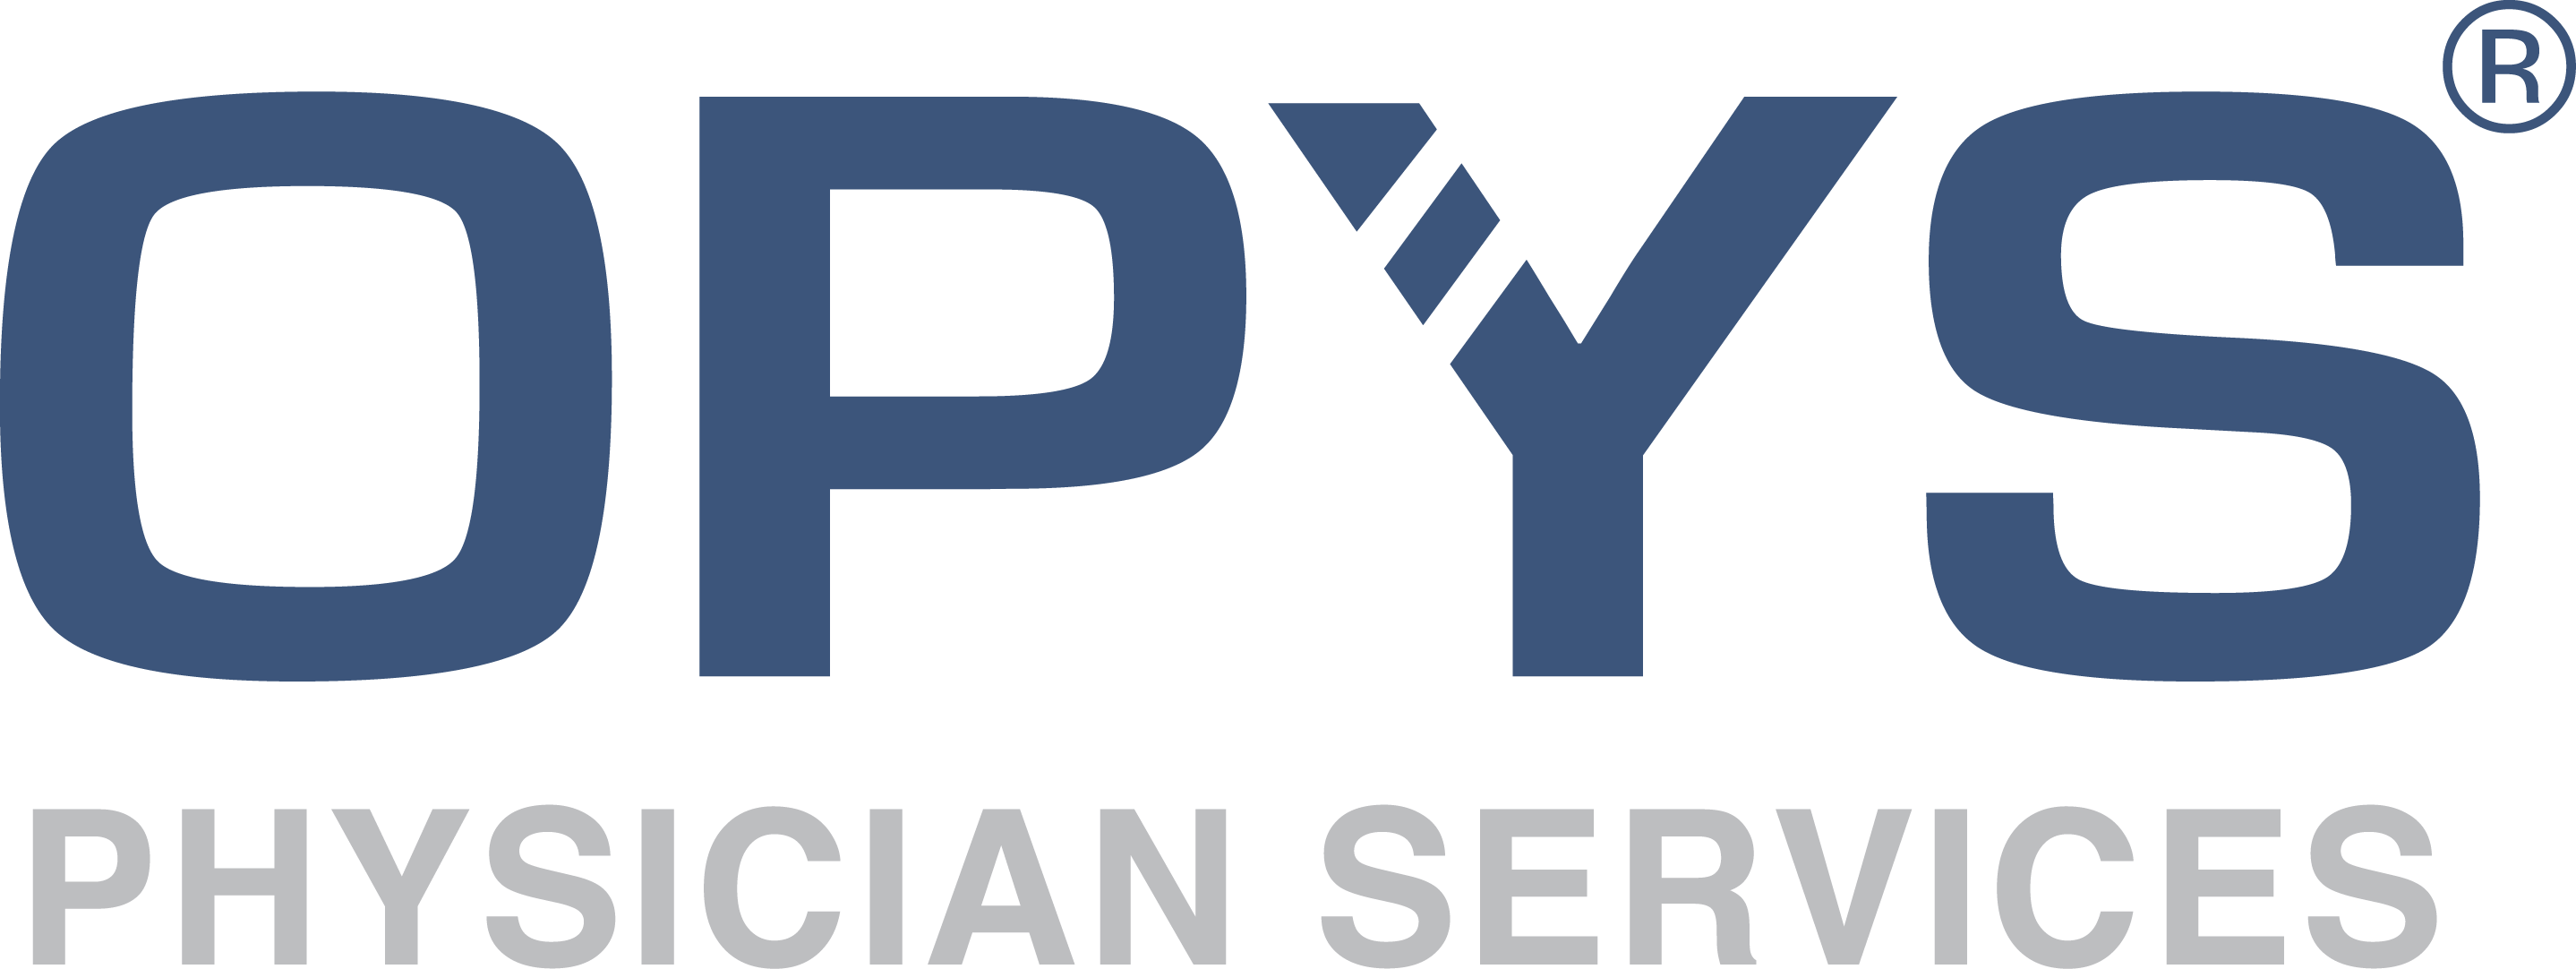 OPYS Physician Services